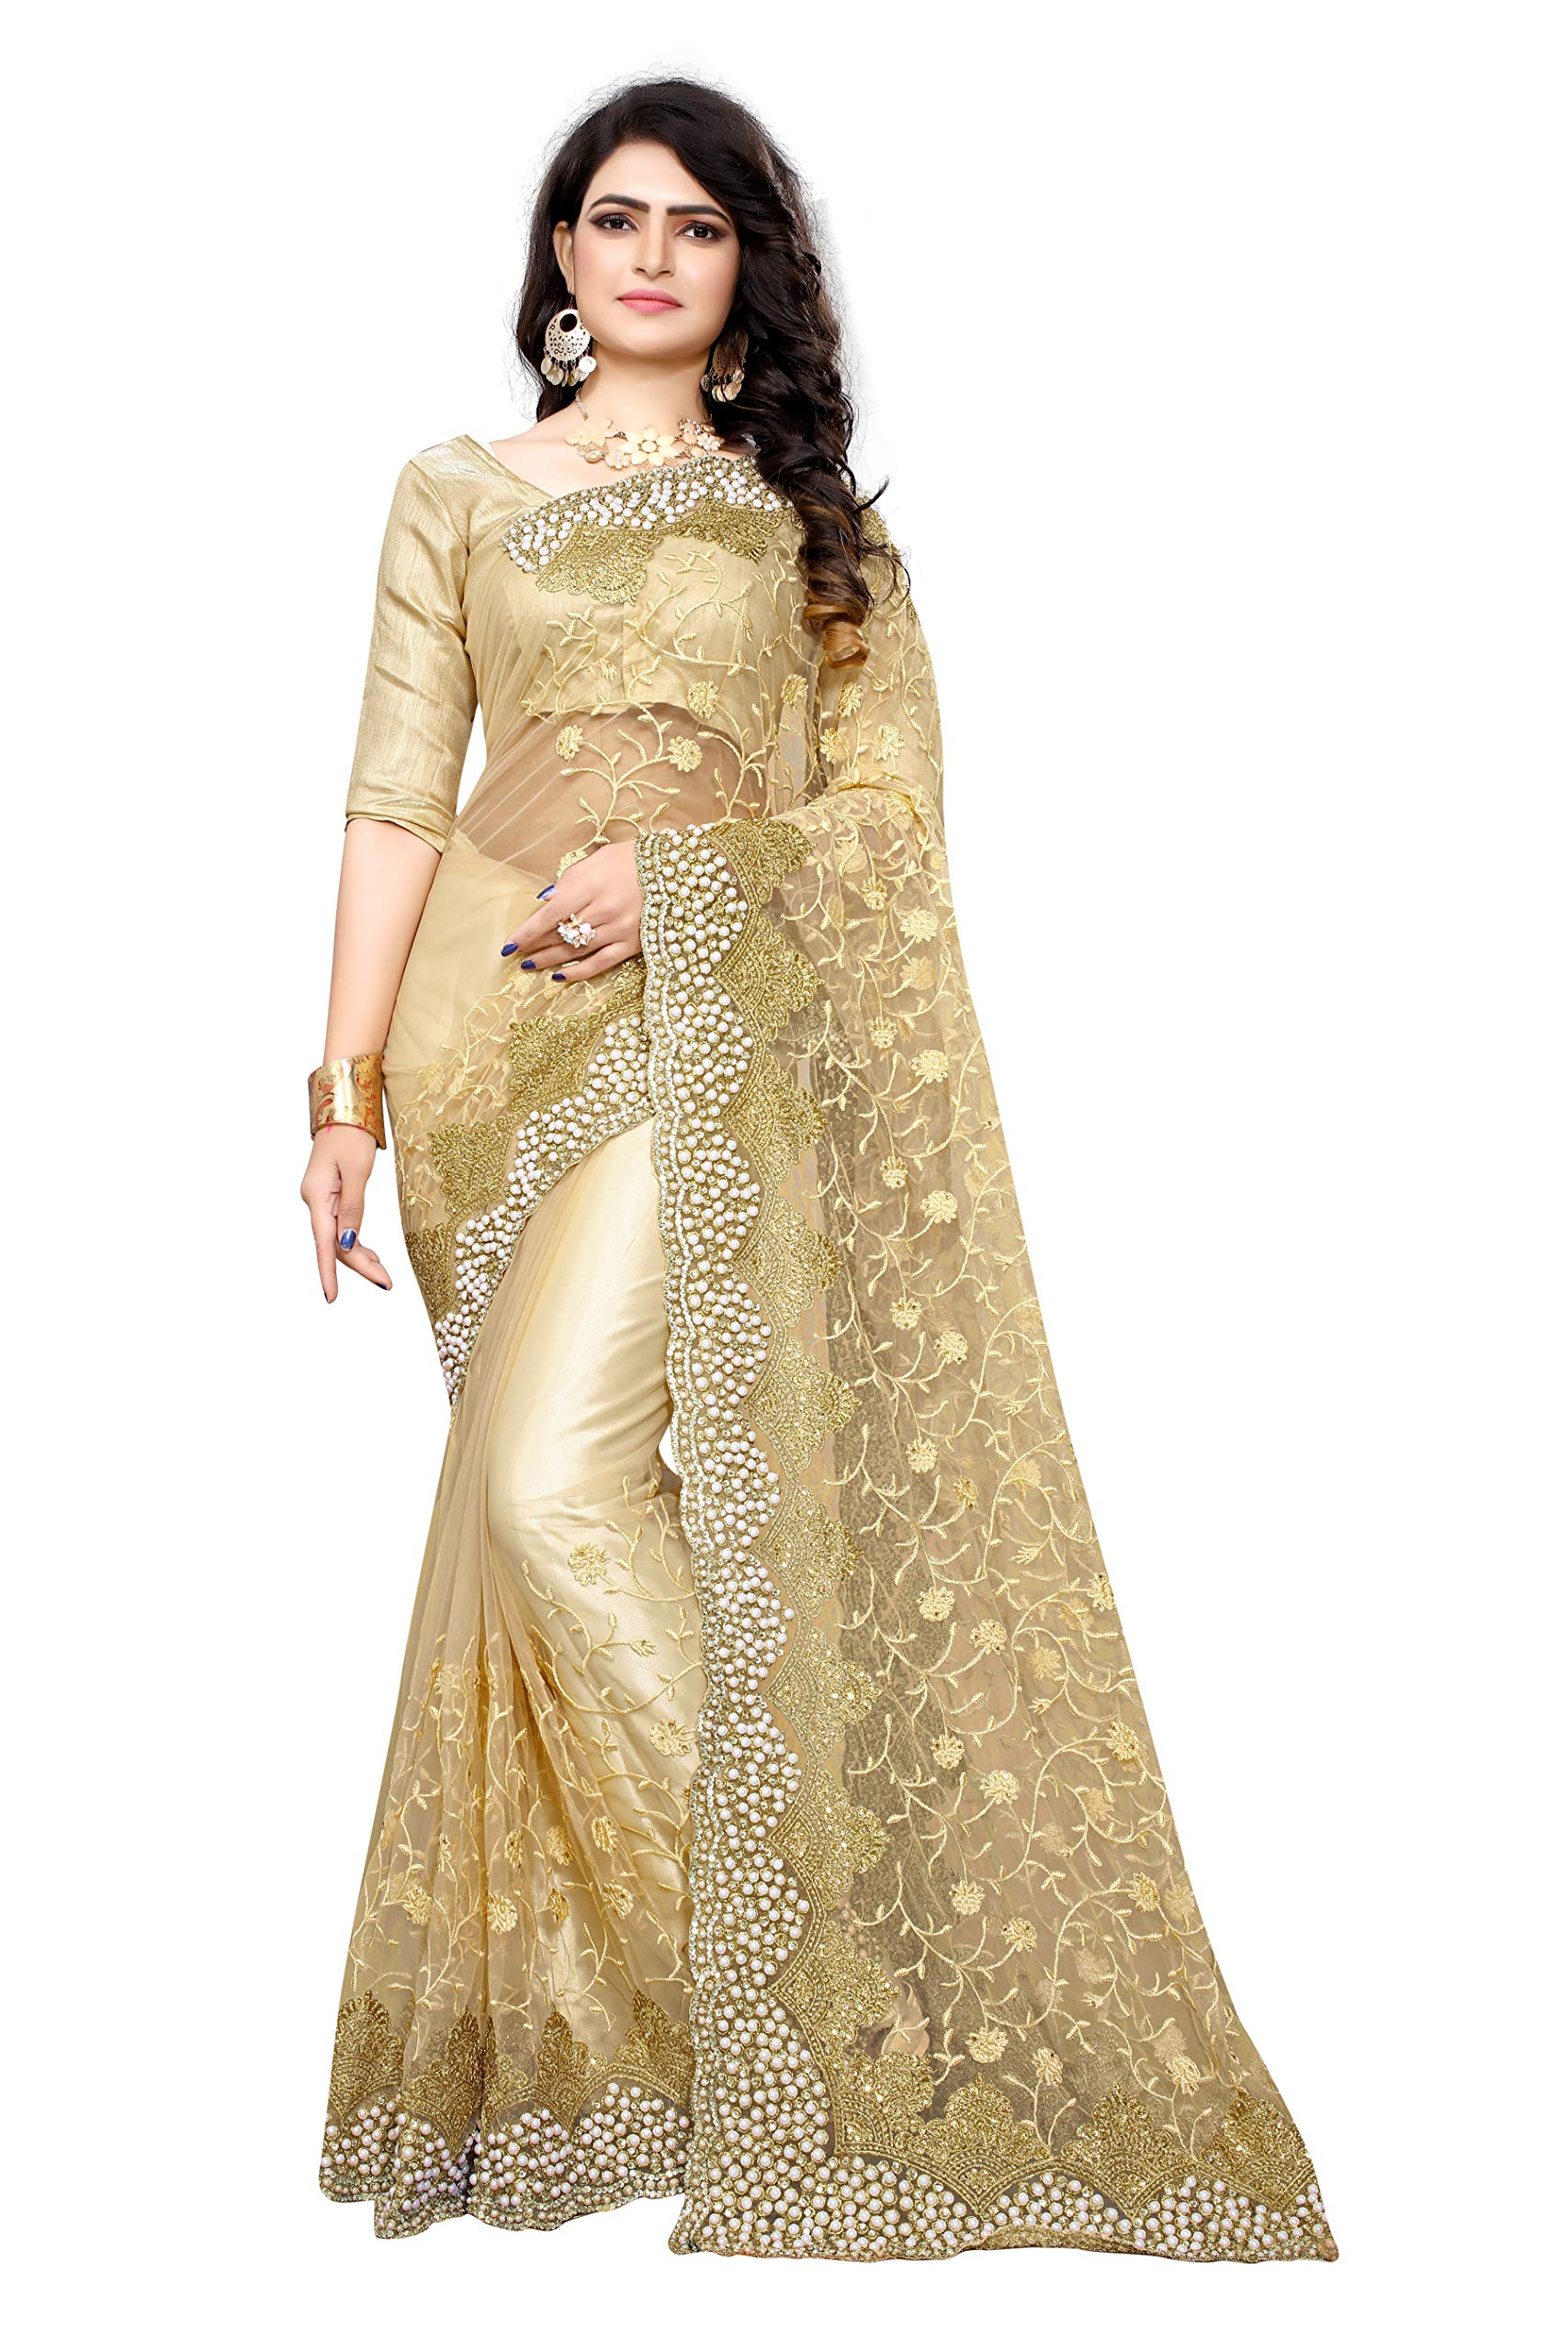 Women's Mono Net & Banglory Silk Saree With Blouse Piece